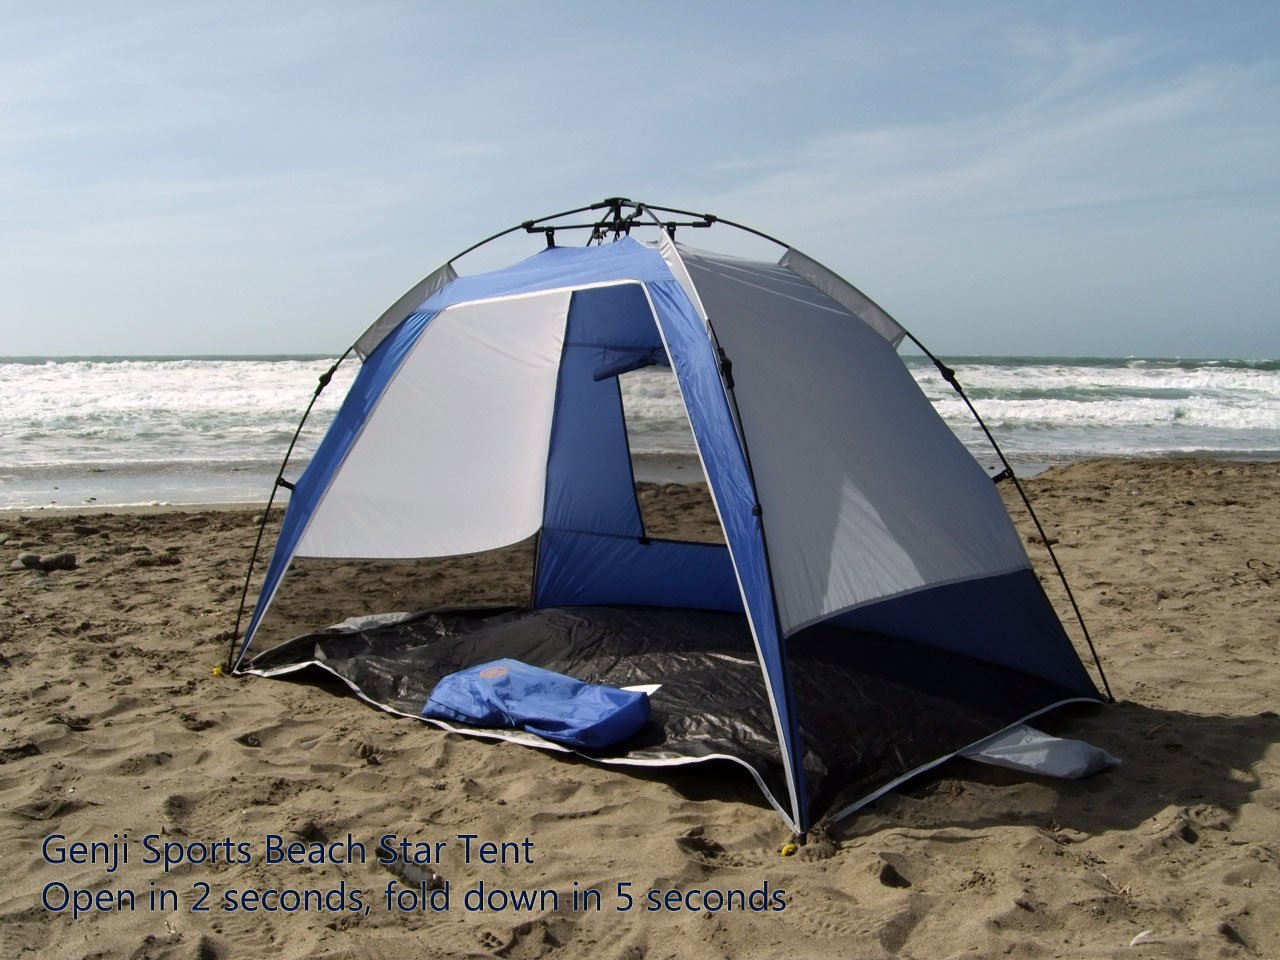 Beach Tent Size & Just How Good Is The Genji Sport Instant Beach Star?